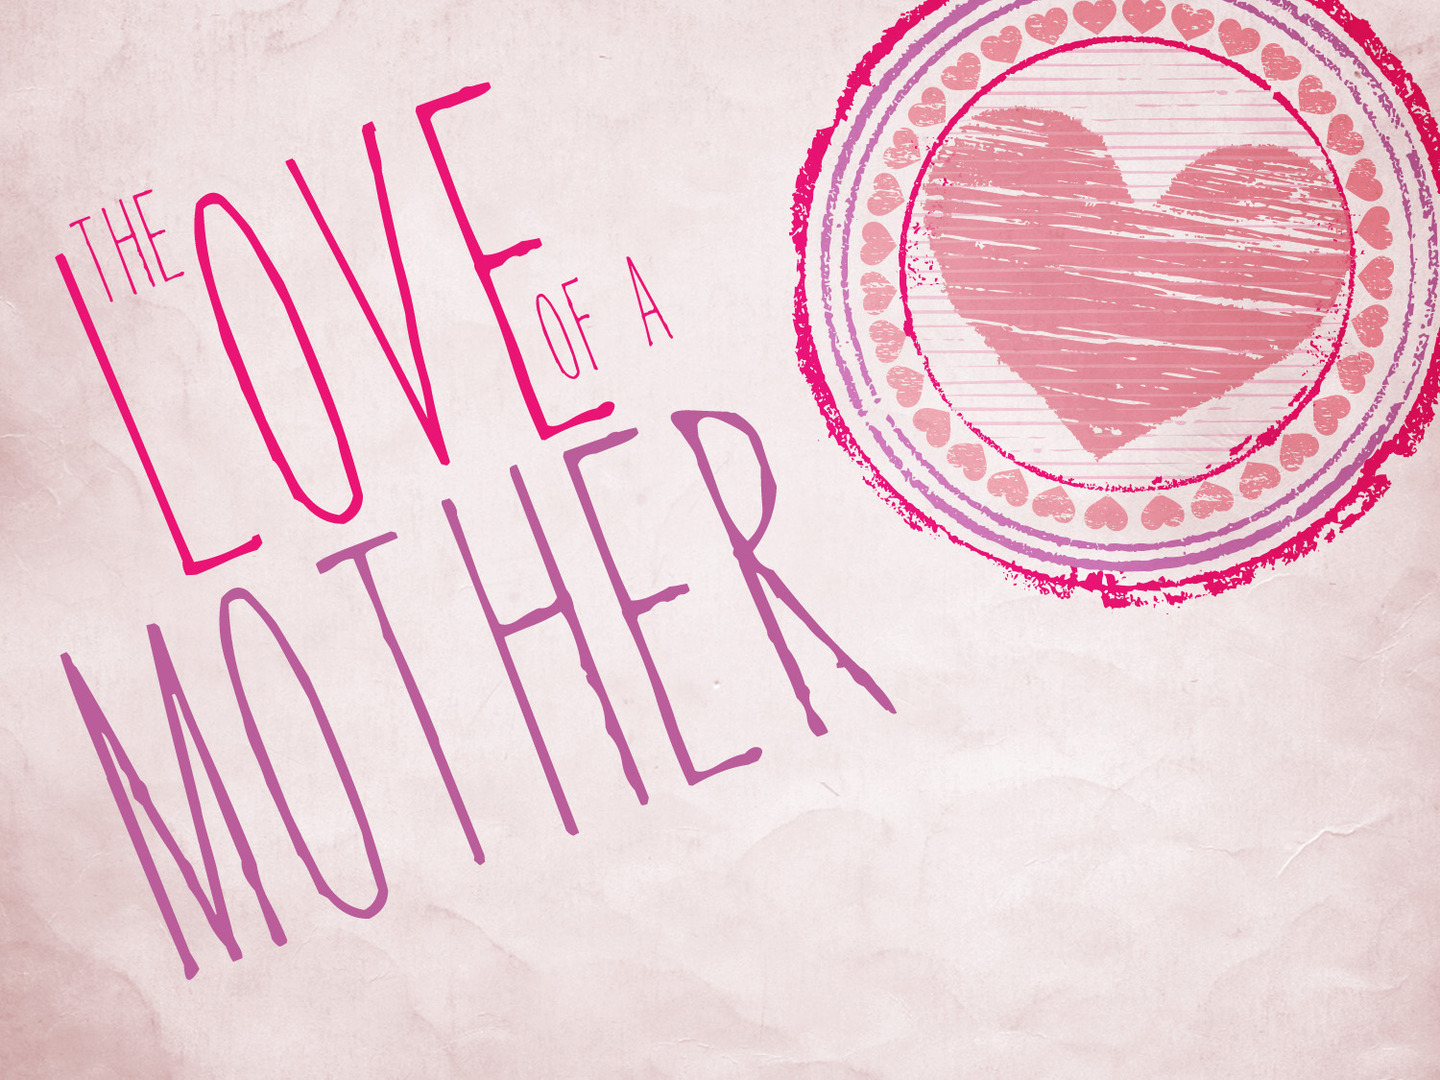 the_love_of_a_mother-title-2-still-4x3.jpg